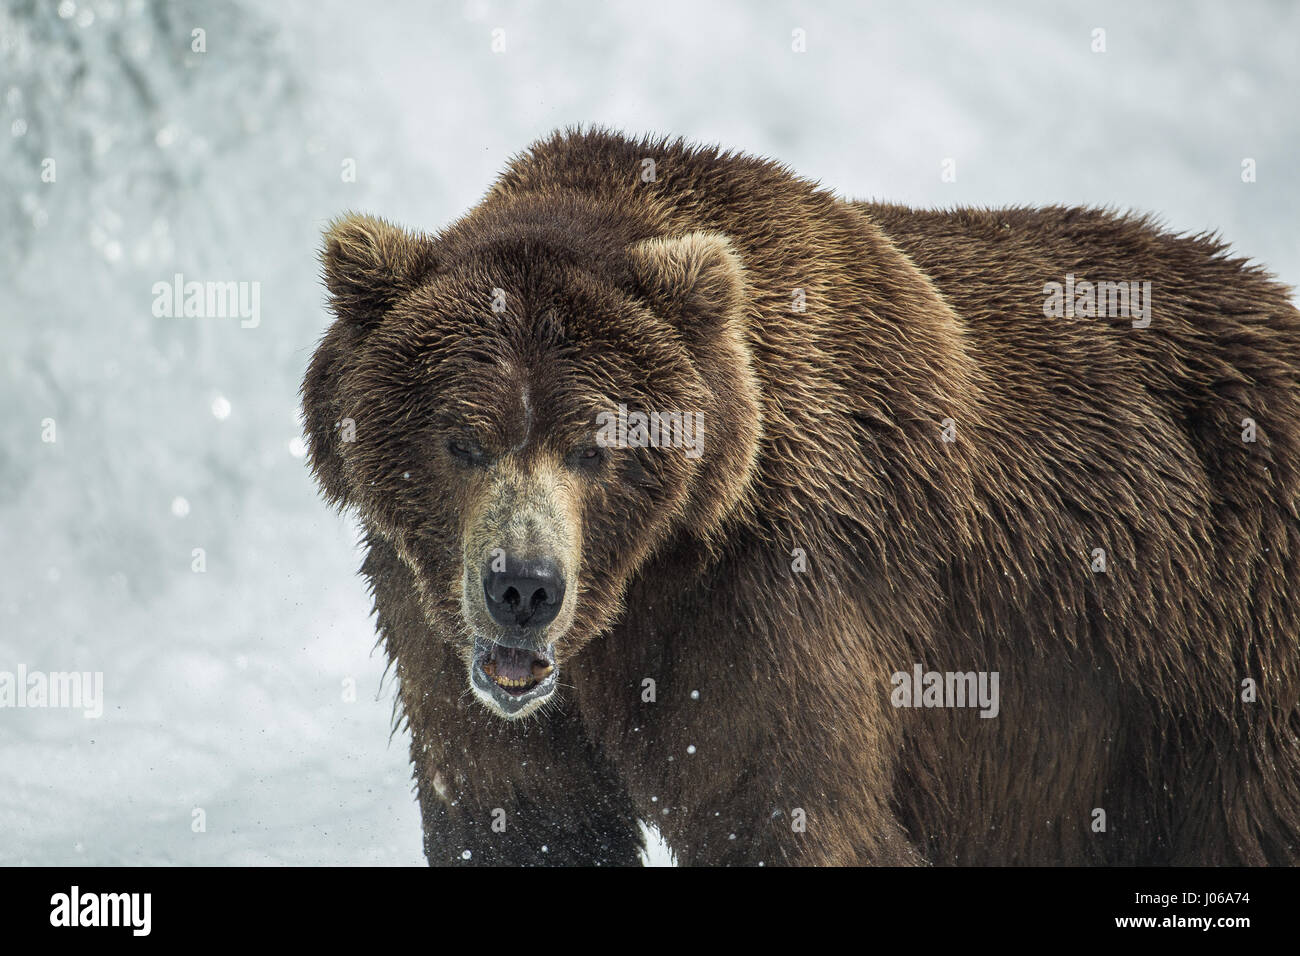 EXPLOSIVE pictures by a British photographer show a hungry brown bear feasting on the peak number of salmon now Stock Photo